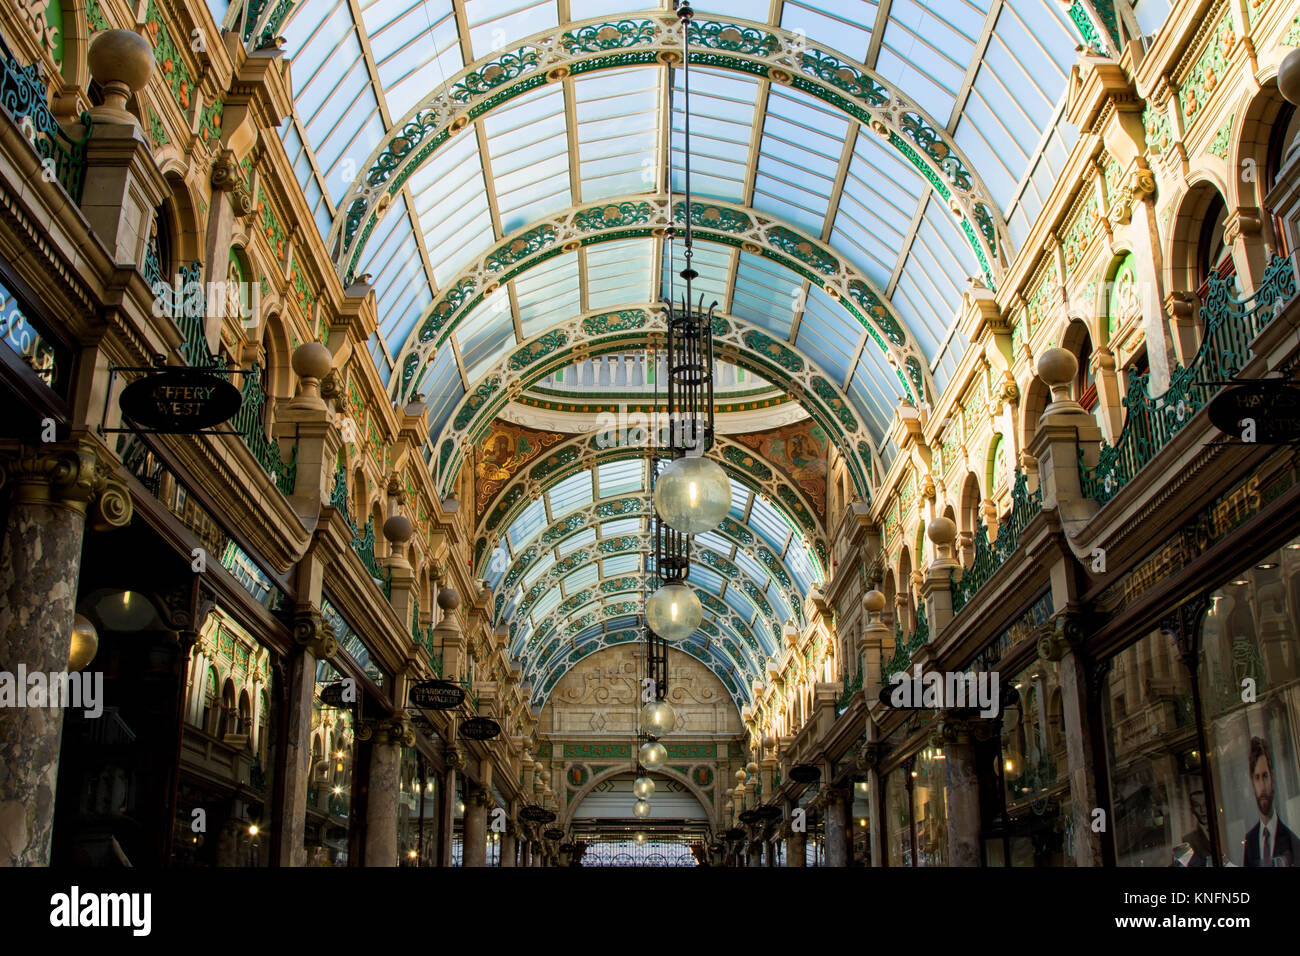 County Arcade in the Victoria Quarter,Leeds,West Yorkshire,England,UK. - Stock Image